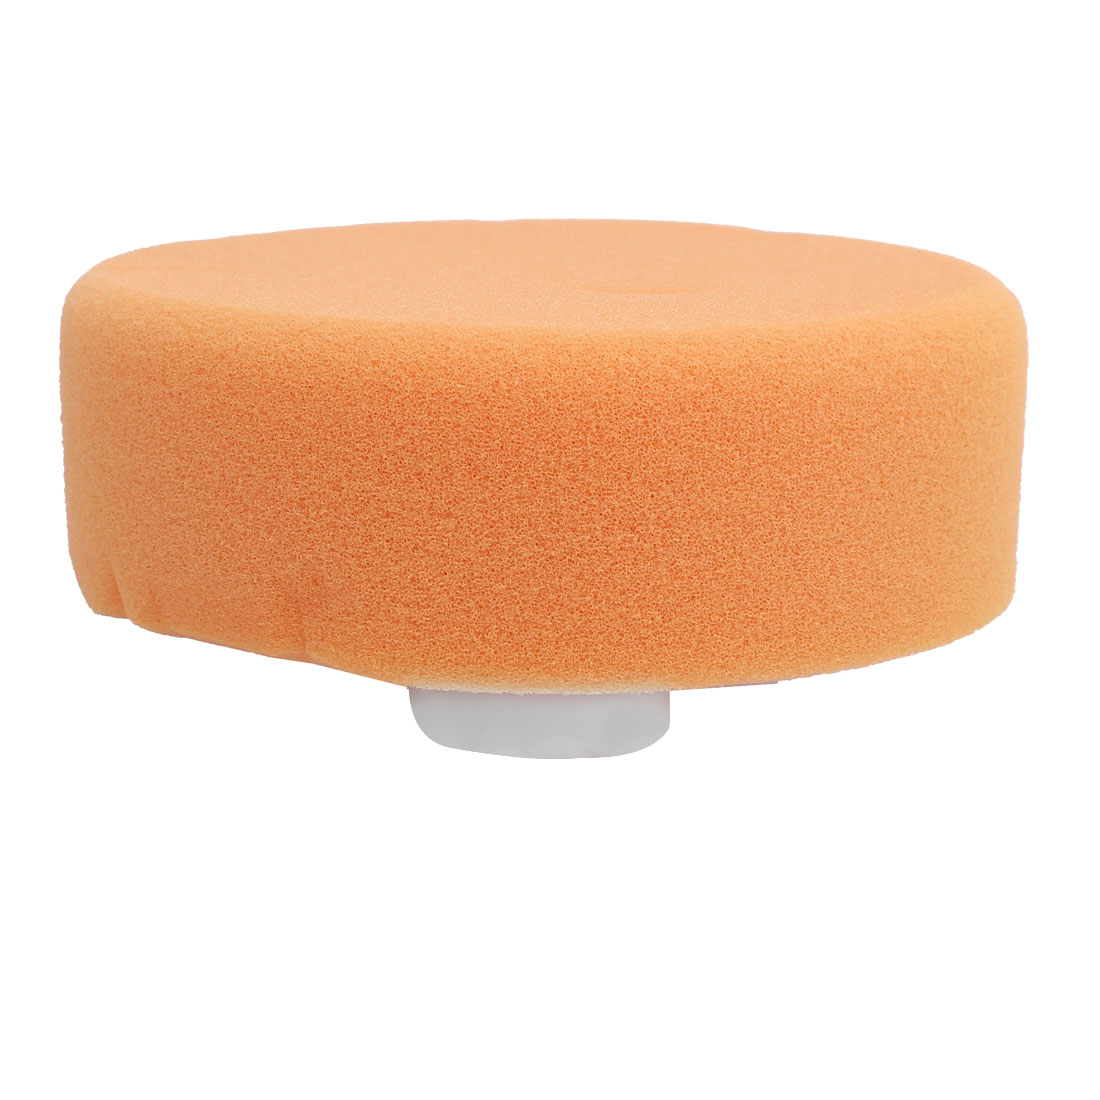 "Car Sponge Polishing Ball Buffing Pad Polisher 5"" Dia Orange"